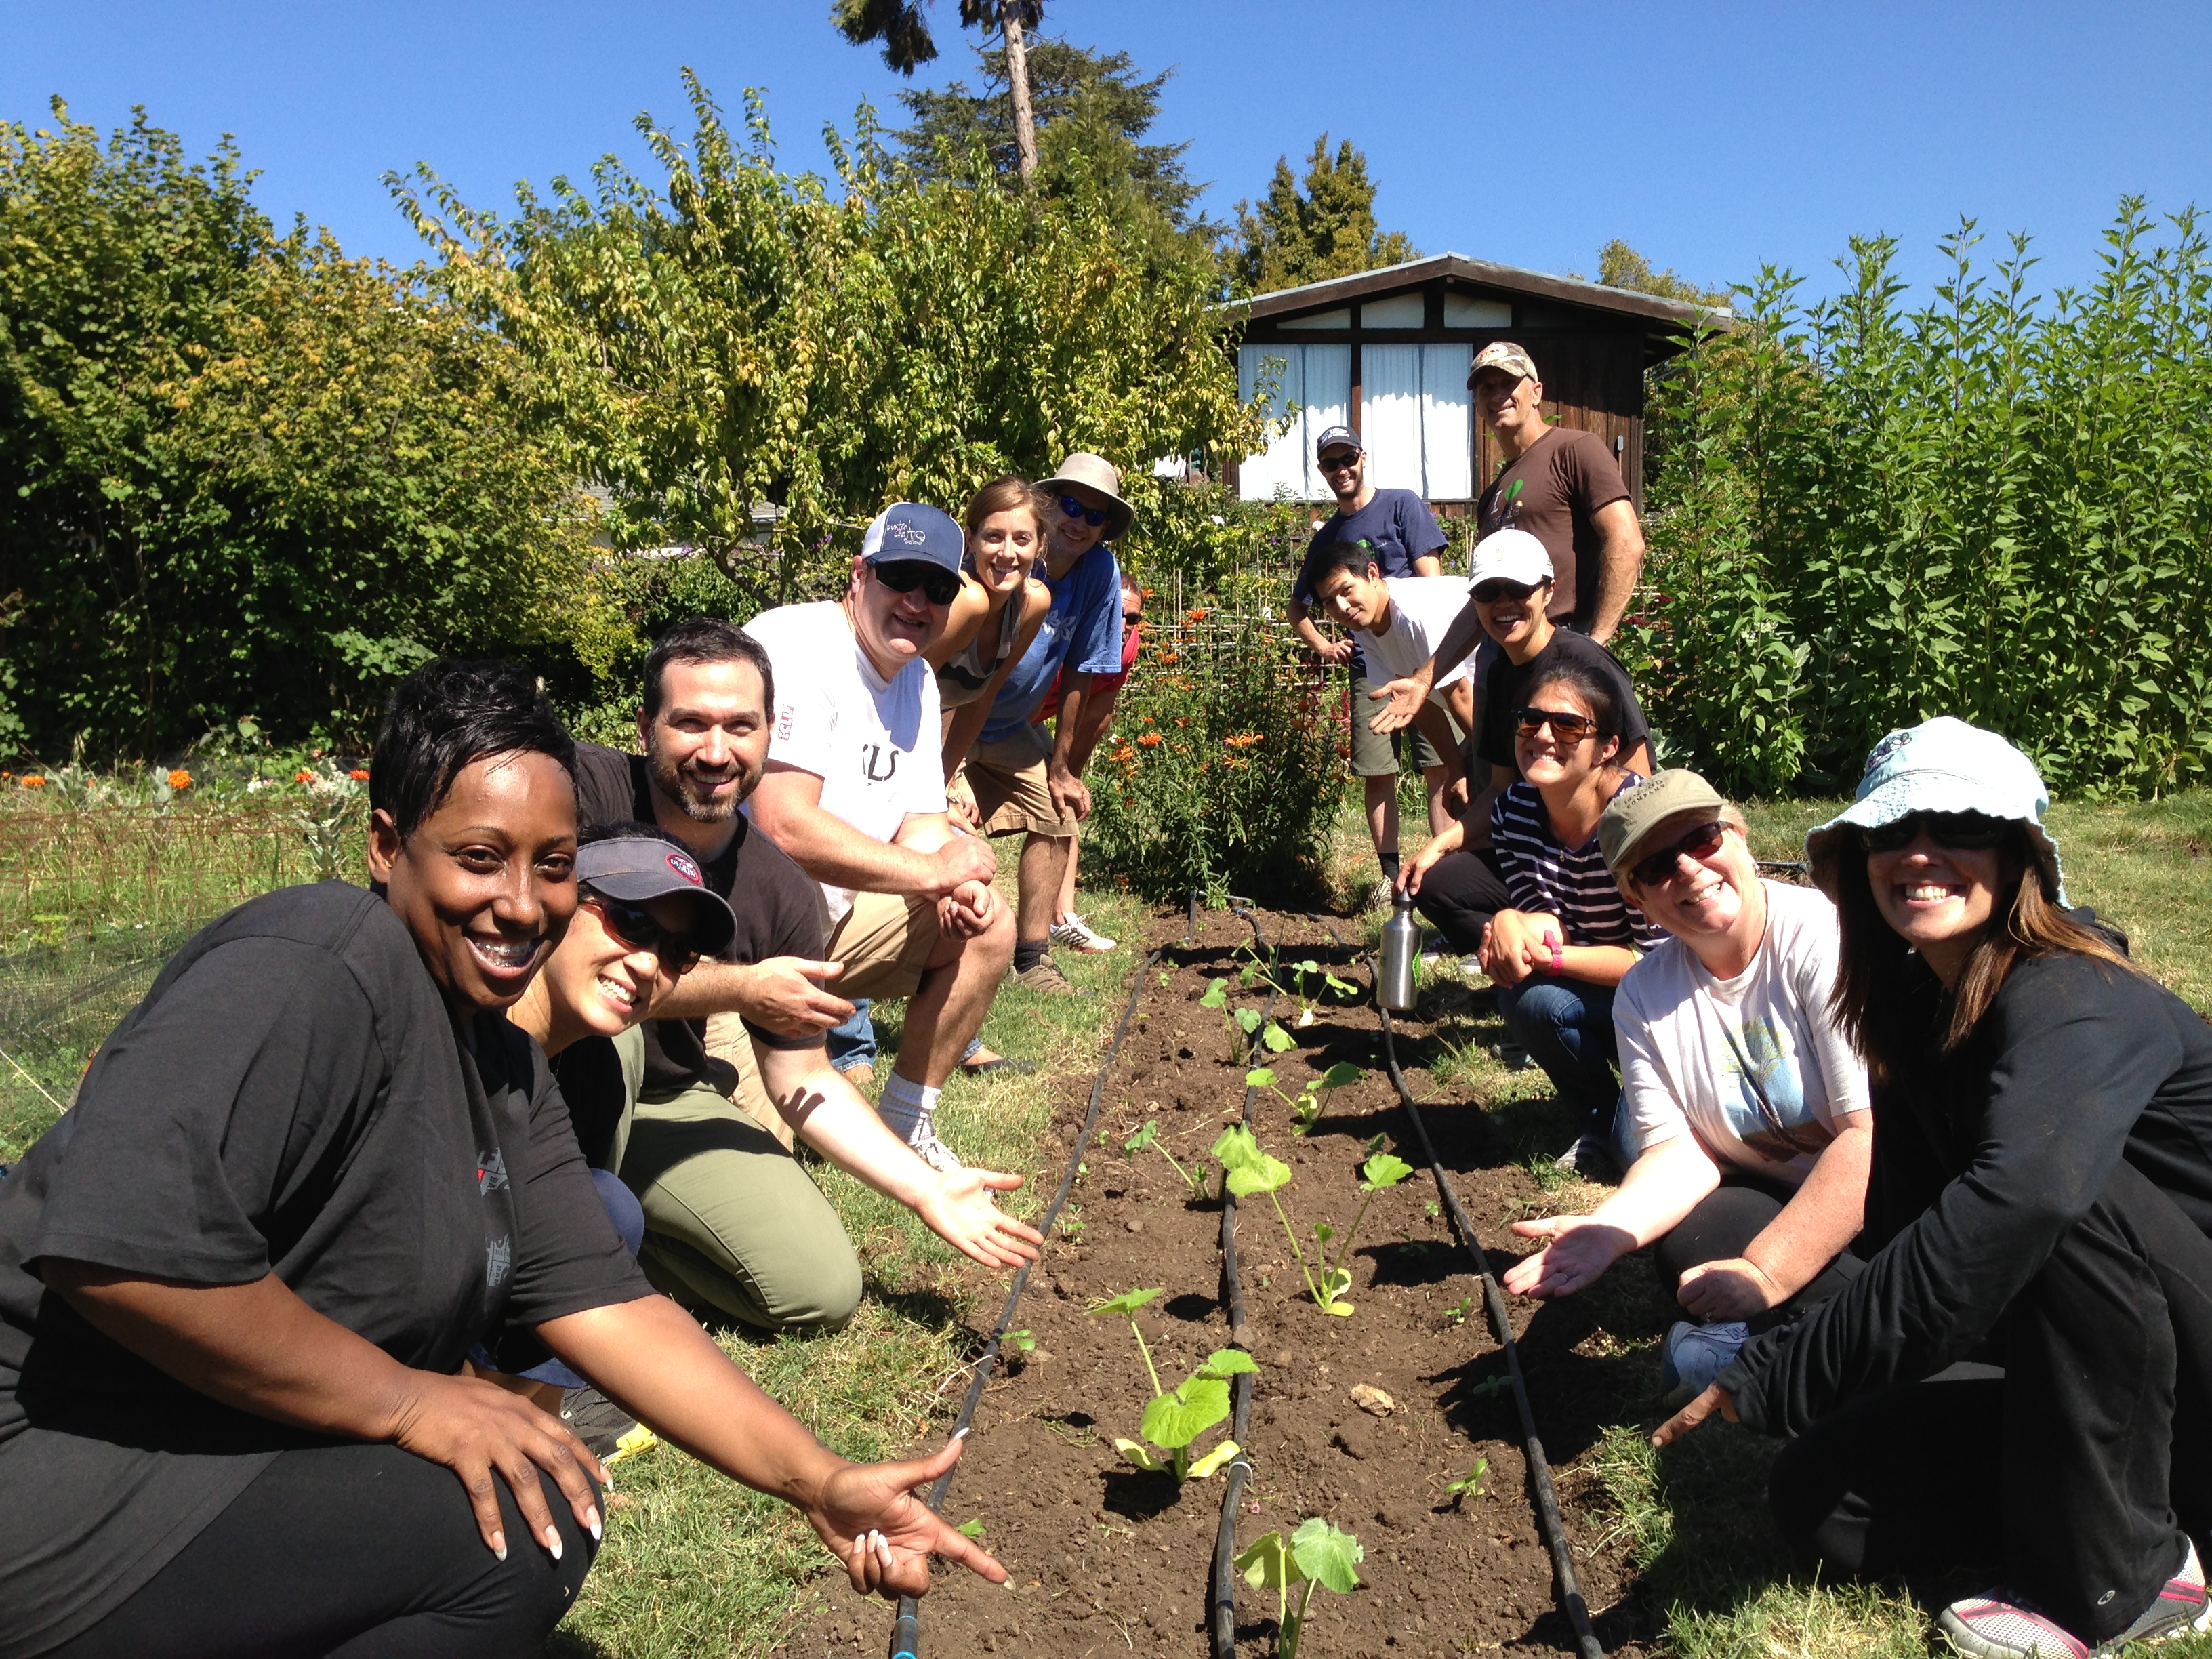 Clif Bar & Company gives employees time off to collectively complete a goal of 10,400 volunteer hours annually. Here, employees volunteer at an edible schoolyard garden in the San Francisco Bay Area